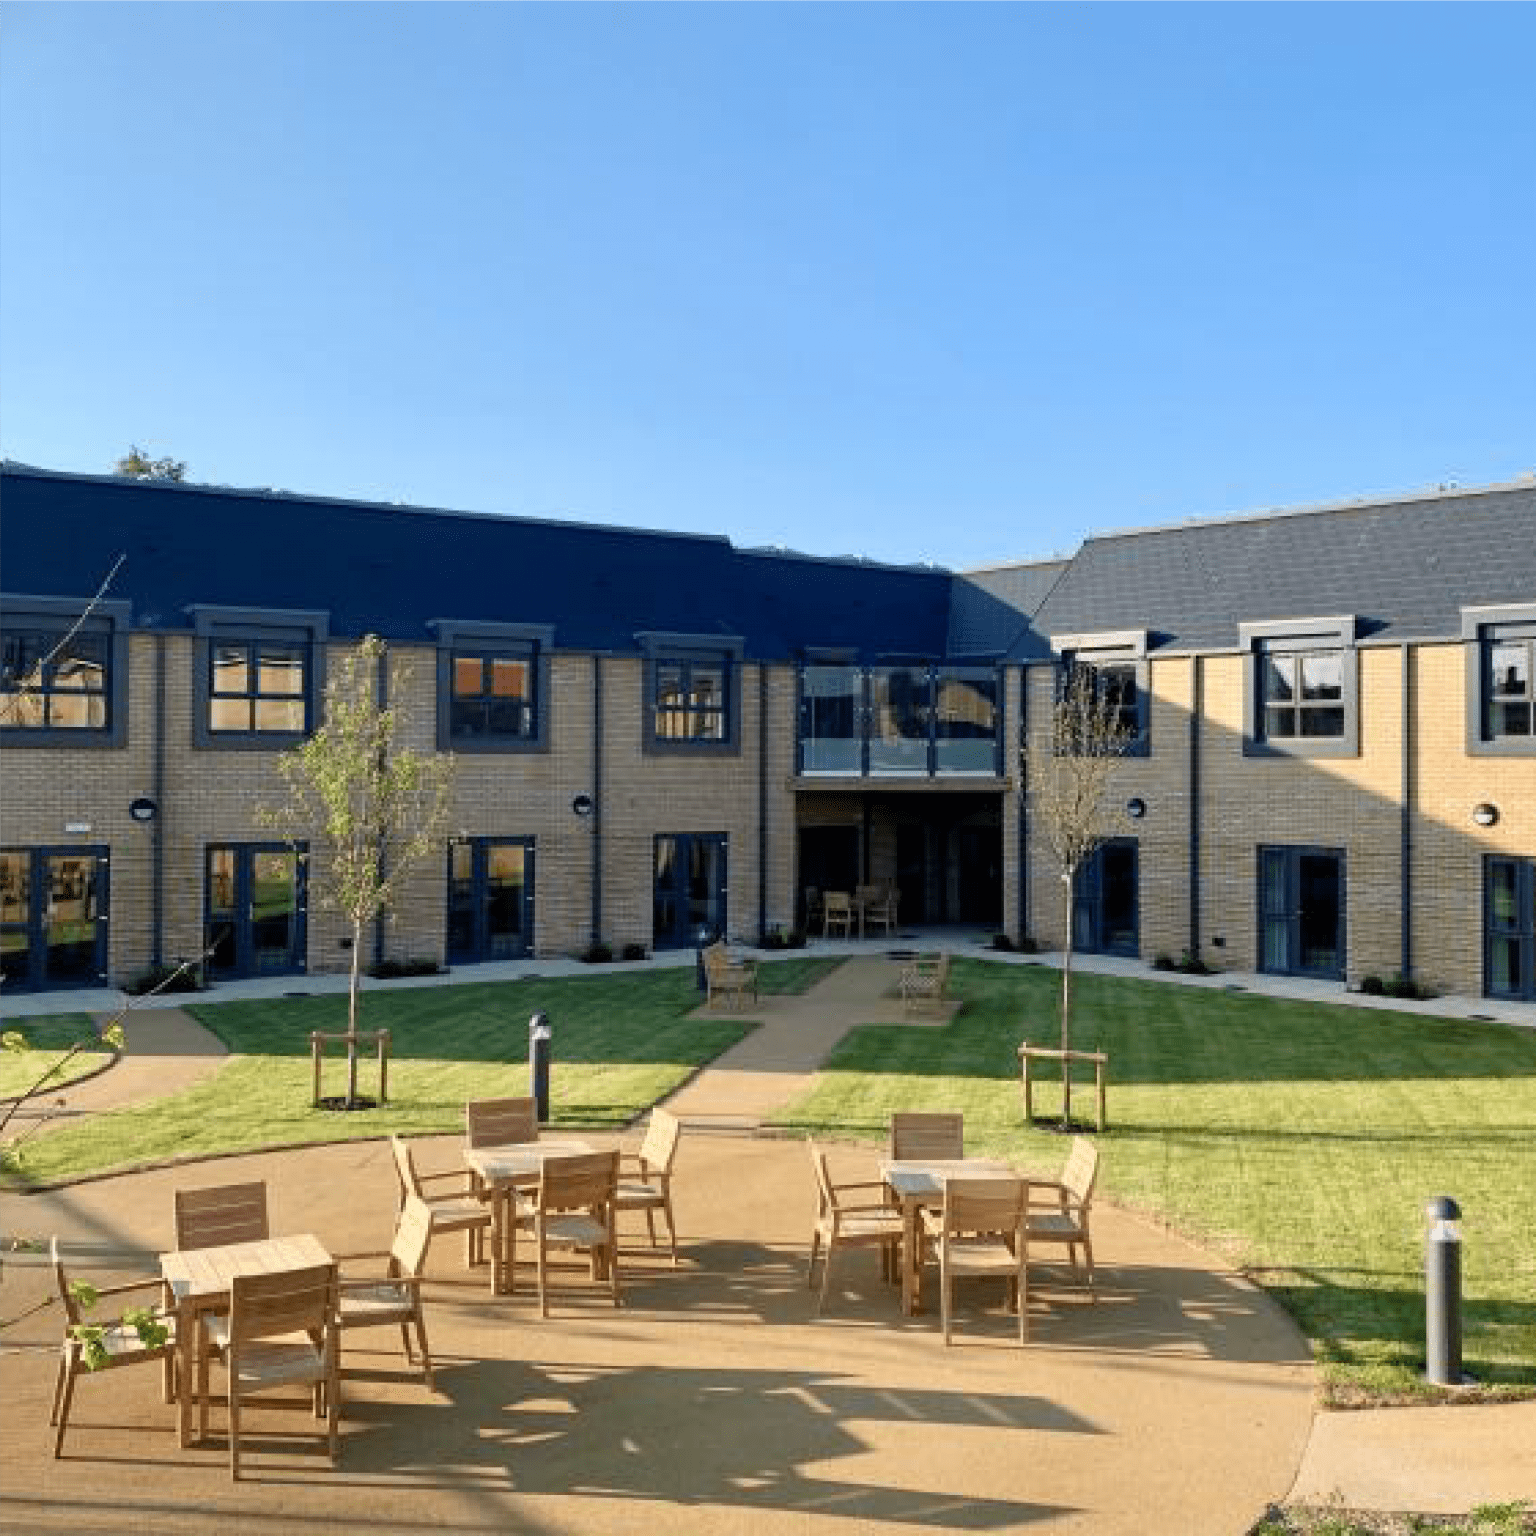 iMist installed a full fire suppression system for Melbourne Springs care home